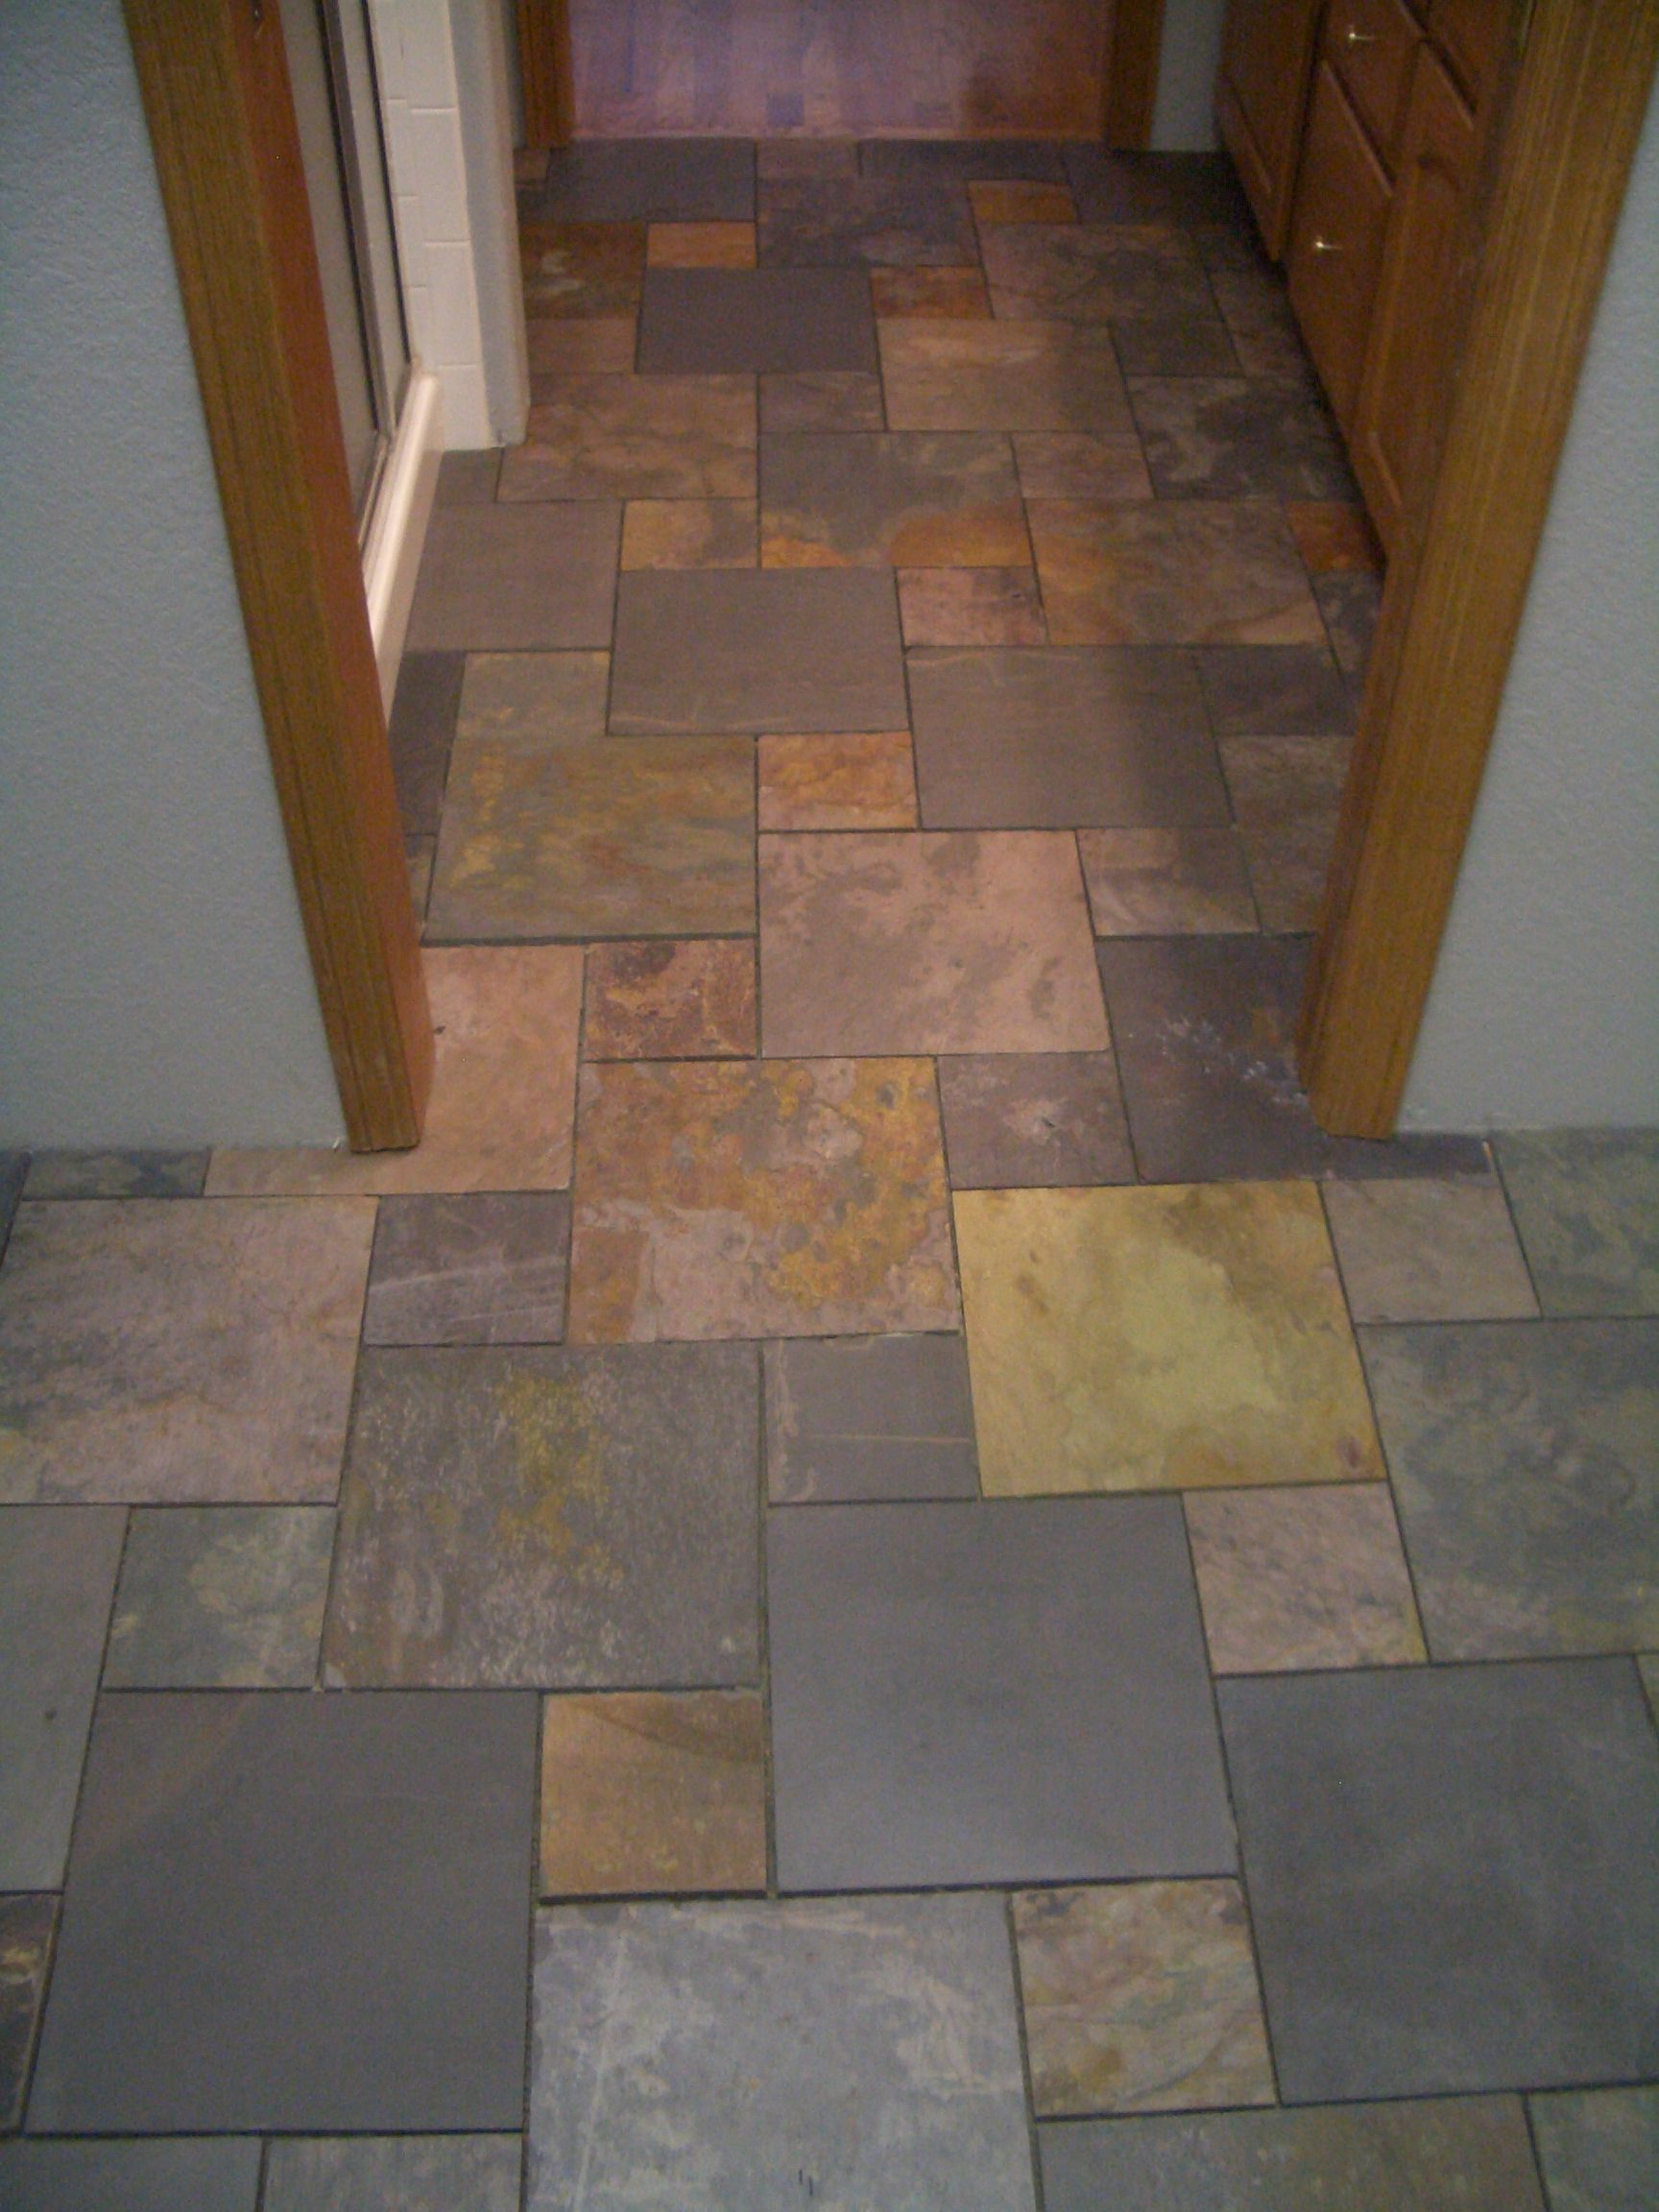 Bathroom floor tile ideas recently finished a bathroom laundry dont forget to get this slate bathroom floor tiles and view full page gallery as wellate pinwheel bathroom floor f dailygadgetfo Images